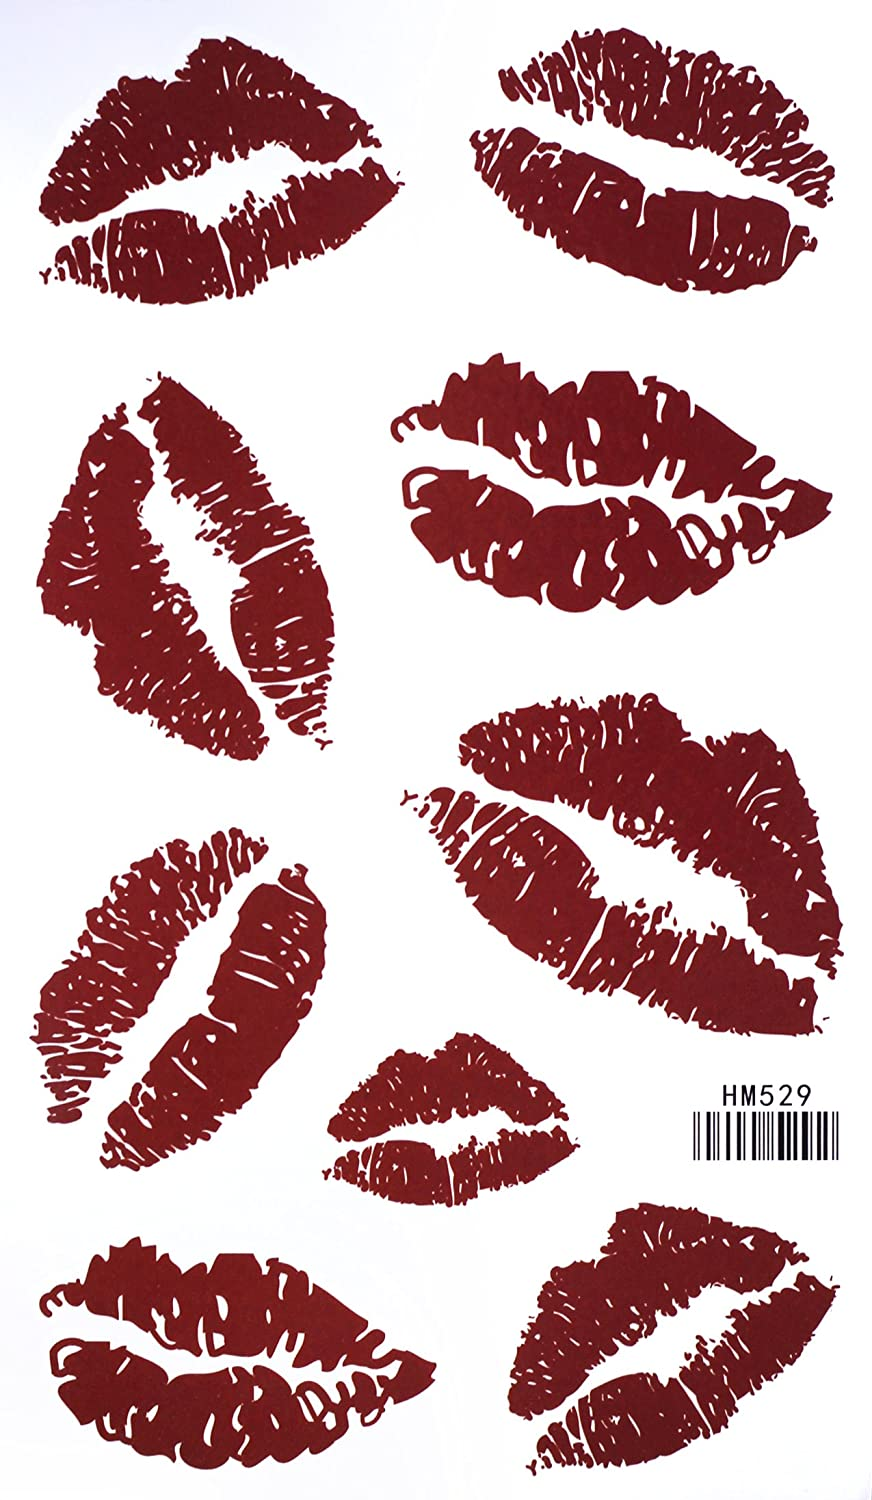 Amazon Com Red Lip Temporary Tattoo Stickers Sexy Tattoos Waterproof Tattoo Stickers Body Paint Makeup Beauty Free for commercial use no attribution required high quality images. red lip temporary tattoo stickers sexy tattoos waterproof tattoo stickers